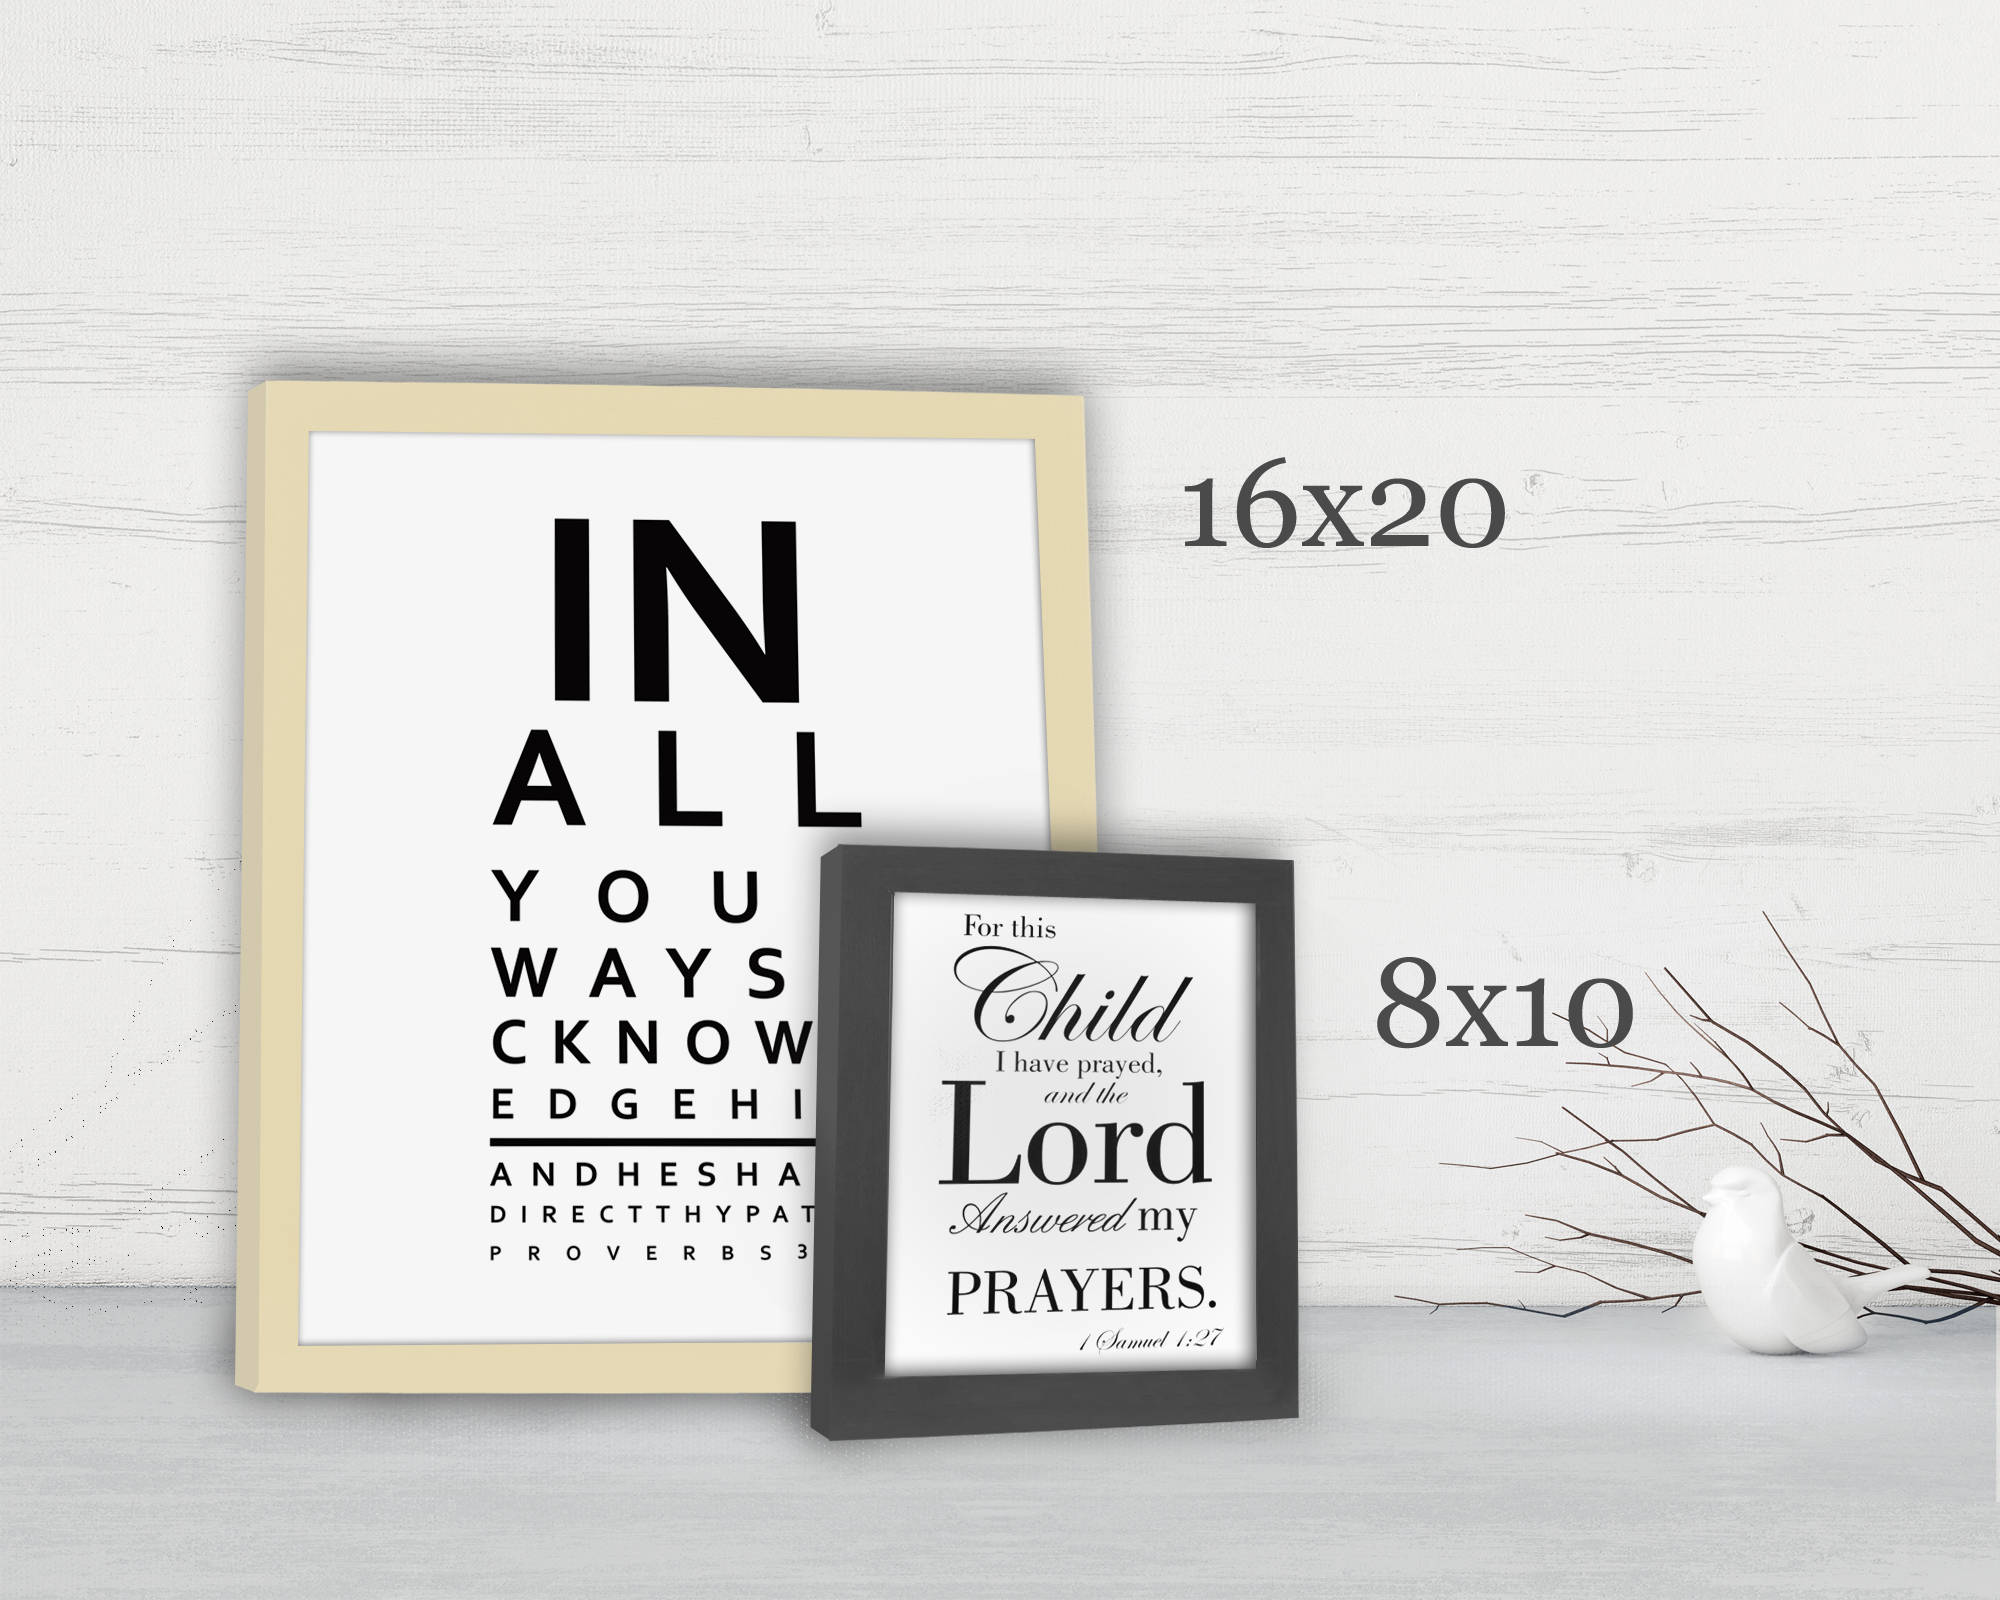 Proverbs 2:6, Framed Scripture Print, Bible Verse Print, fine art, teacher, gift ; homeschool, decor, christian, pastor, wisdom